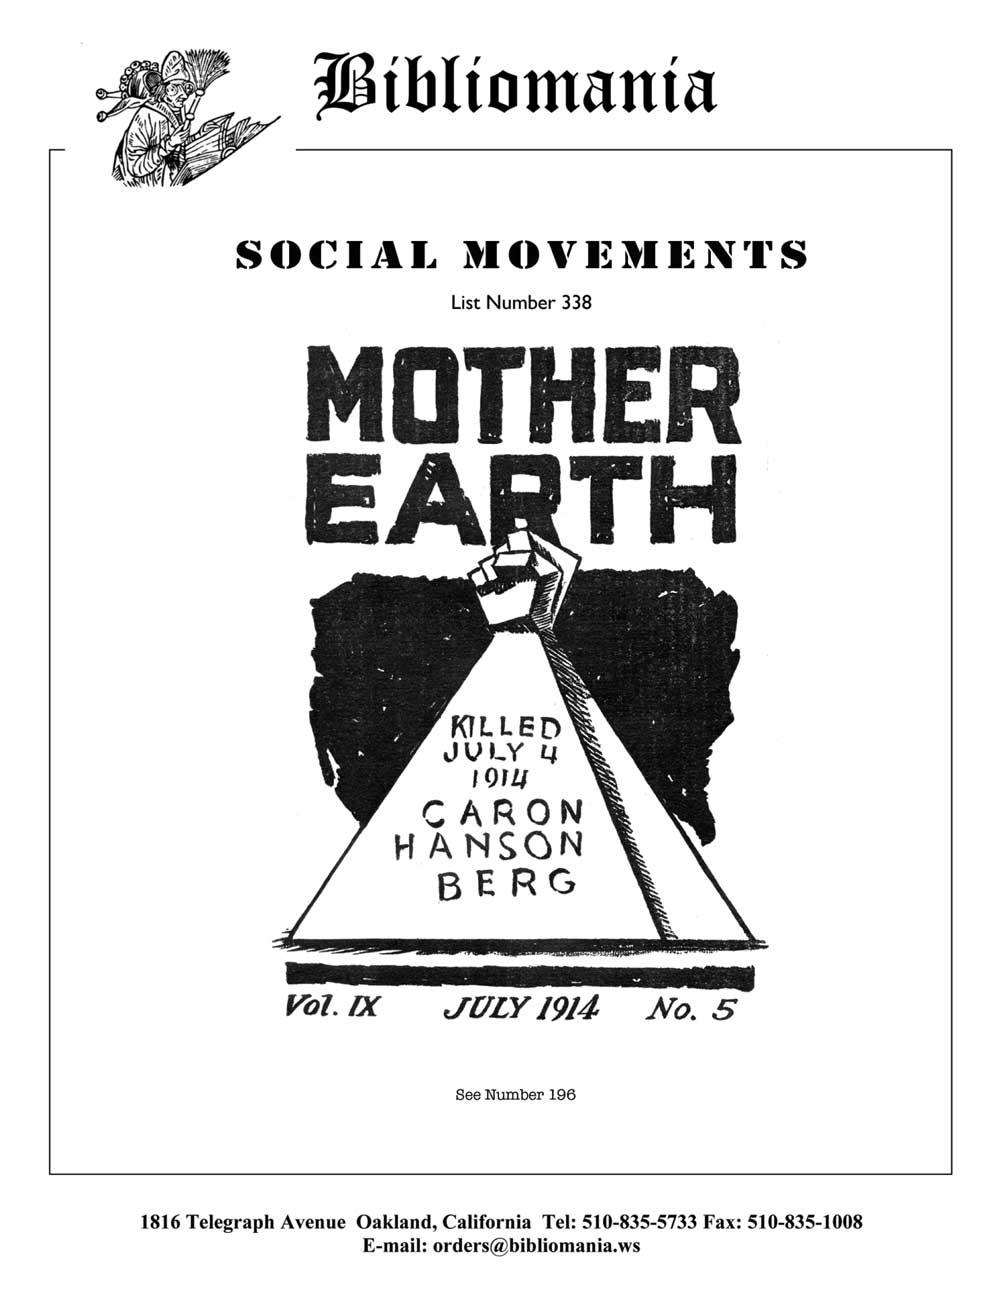 List Number 338 Social Movements